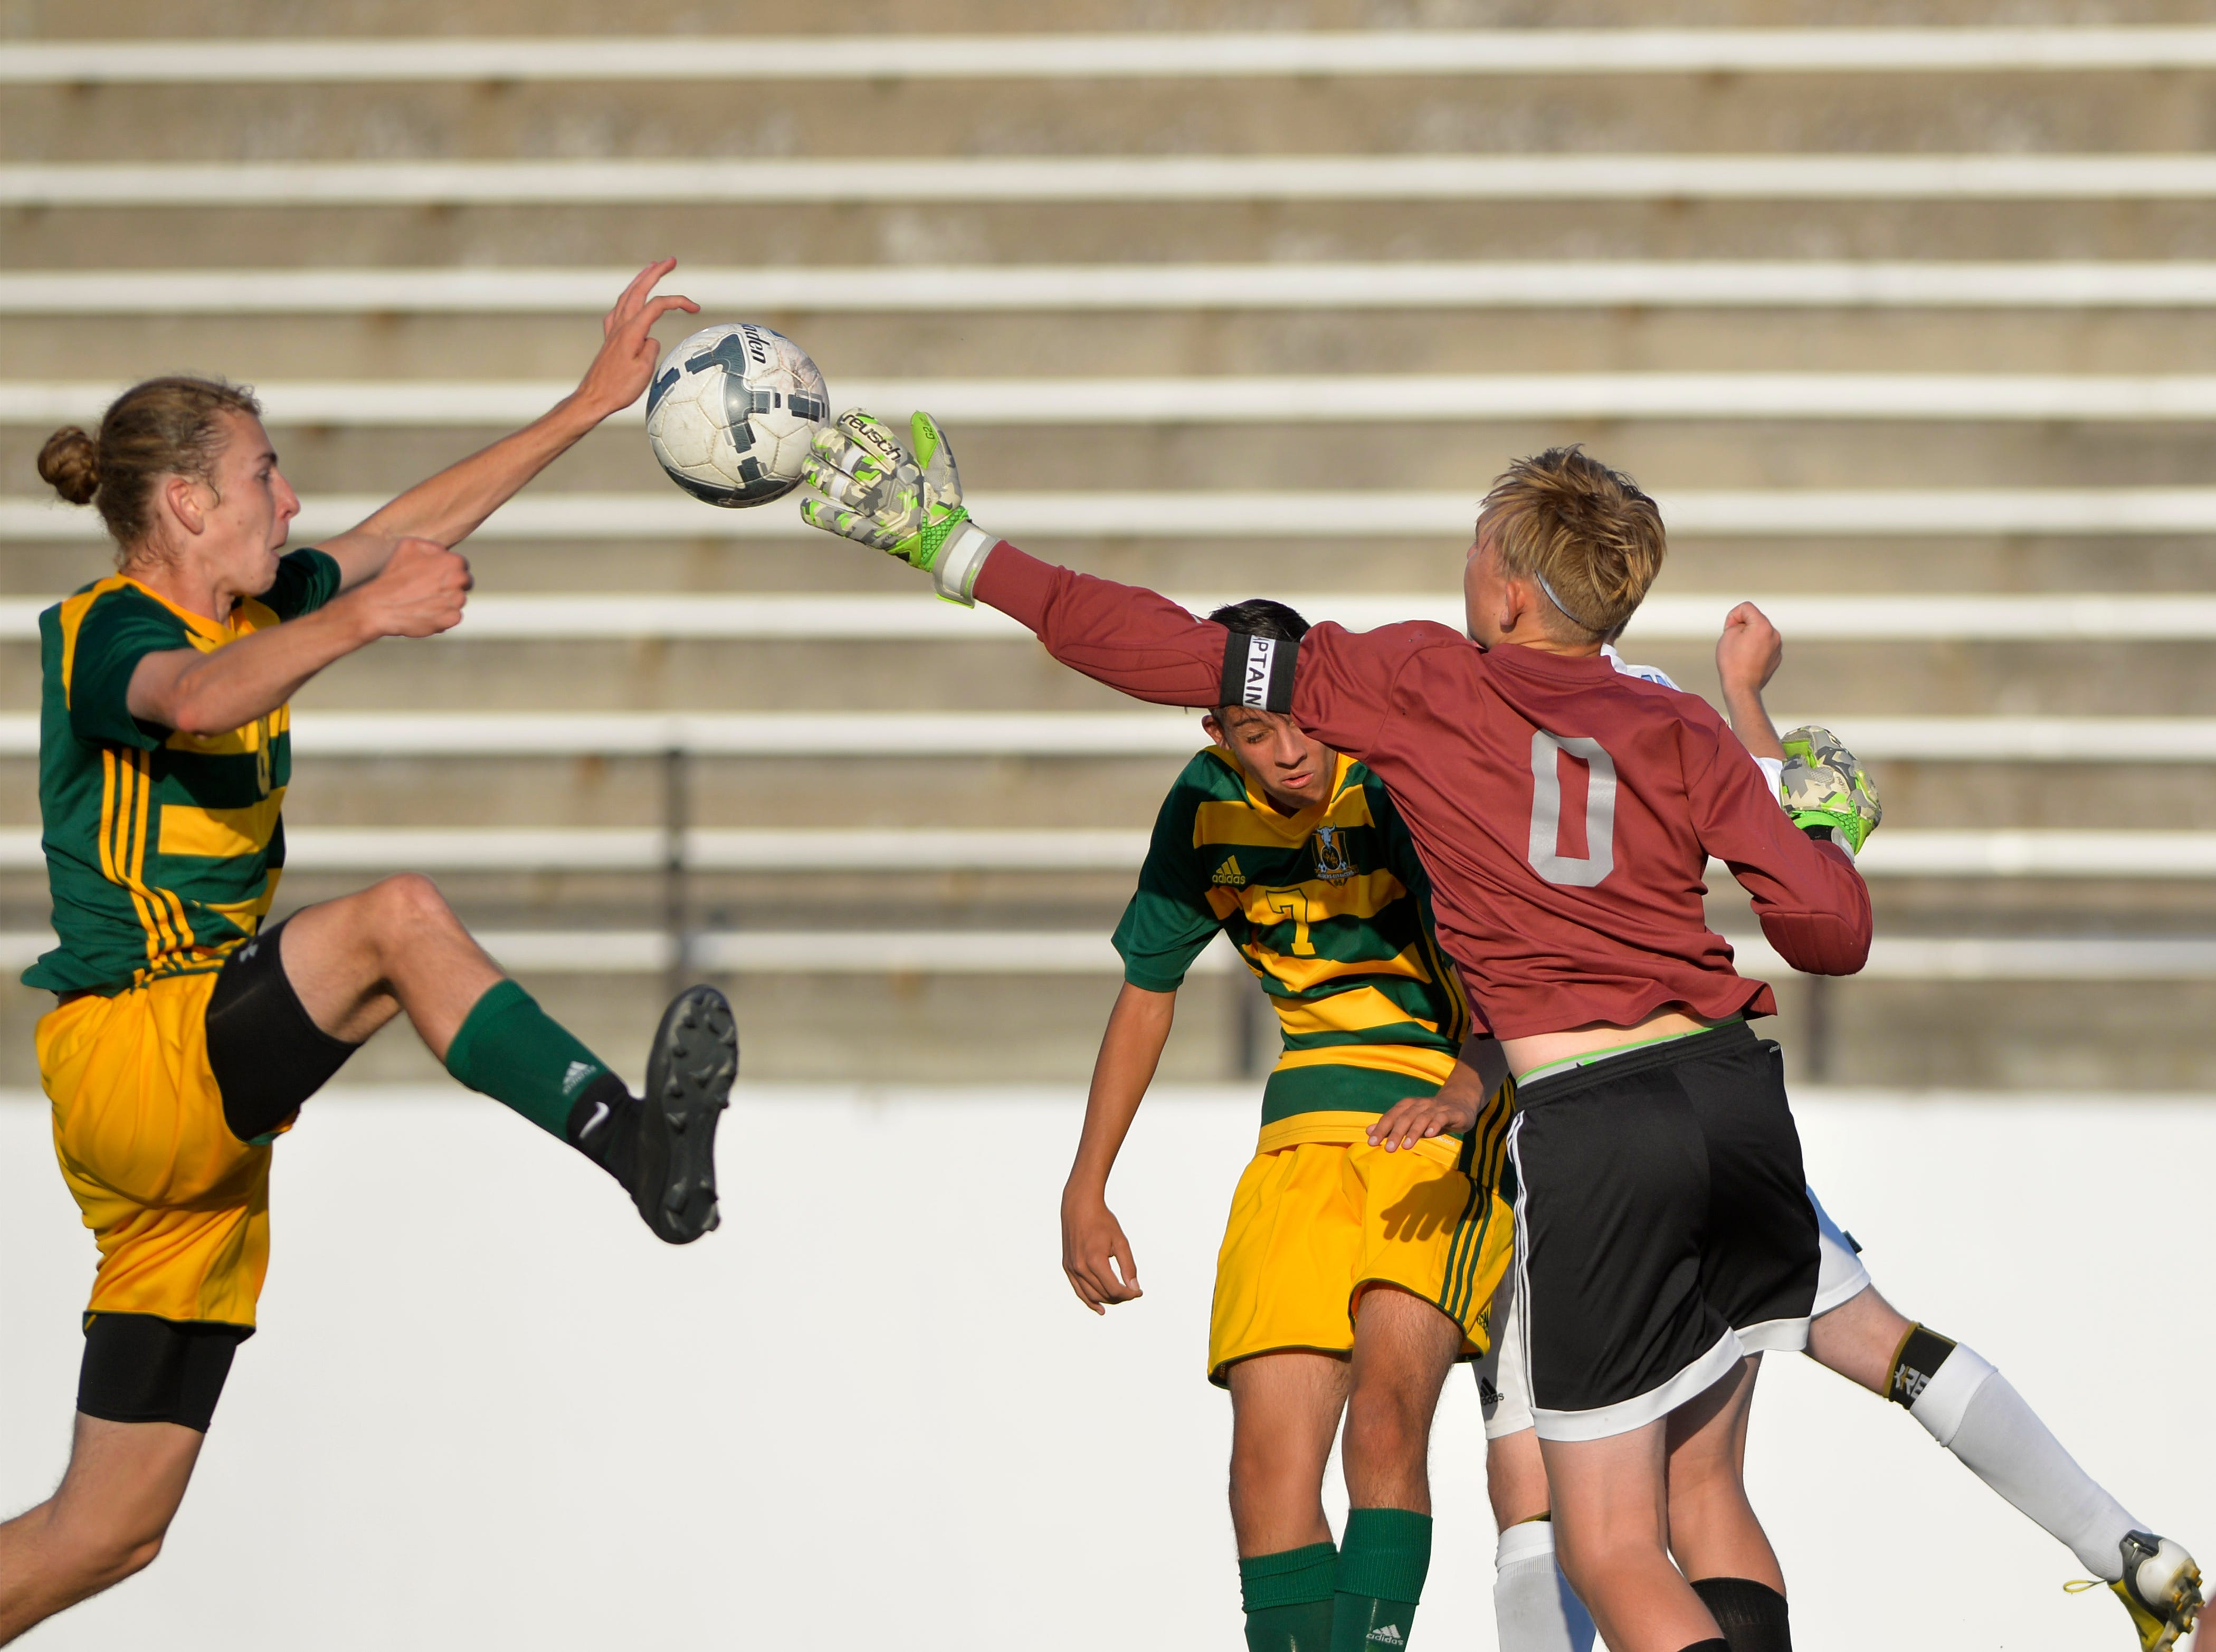 Great Falls High keeper Liam Toner attempts to knock away the ball on a cornerkick during the crosstown soccer match at Memorial Stadium, Thursday, Sept. 6, 2018.